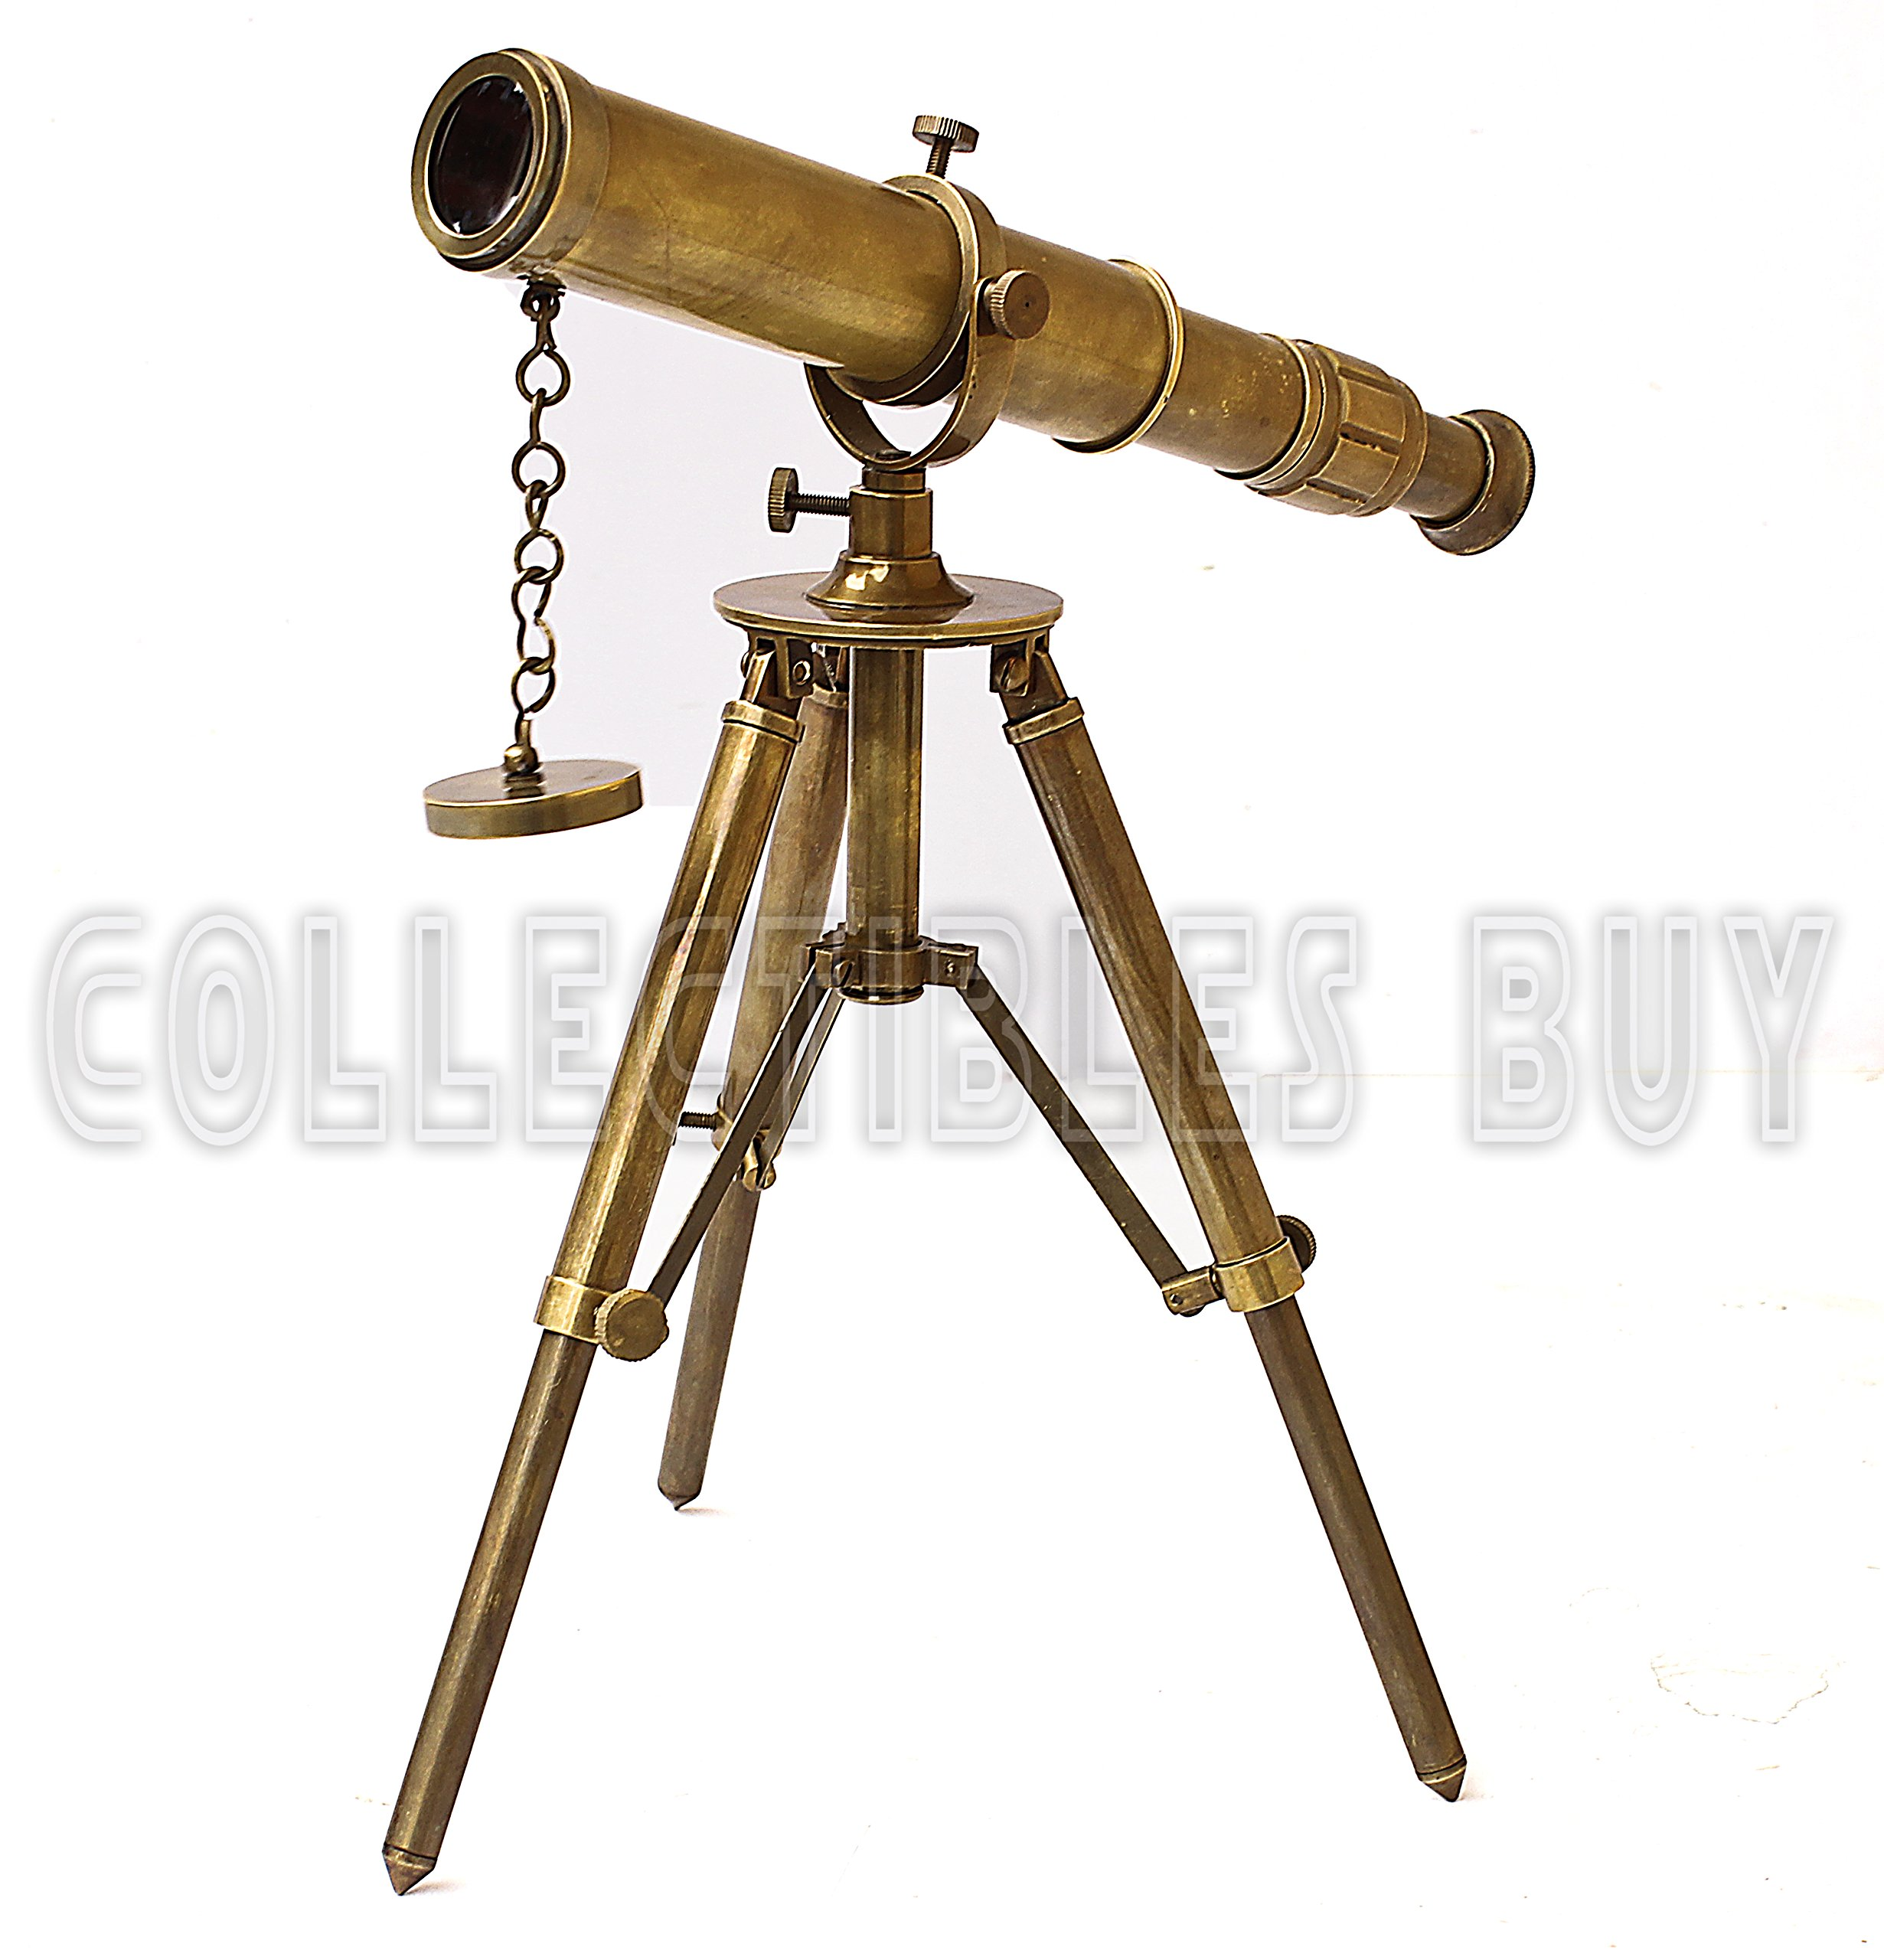 Collectibles Buy Vintage Table Decorative Brass Telescope with Tripod Maritime Ship Instrument Marine Gifts Item